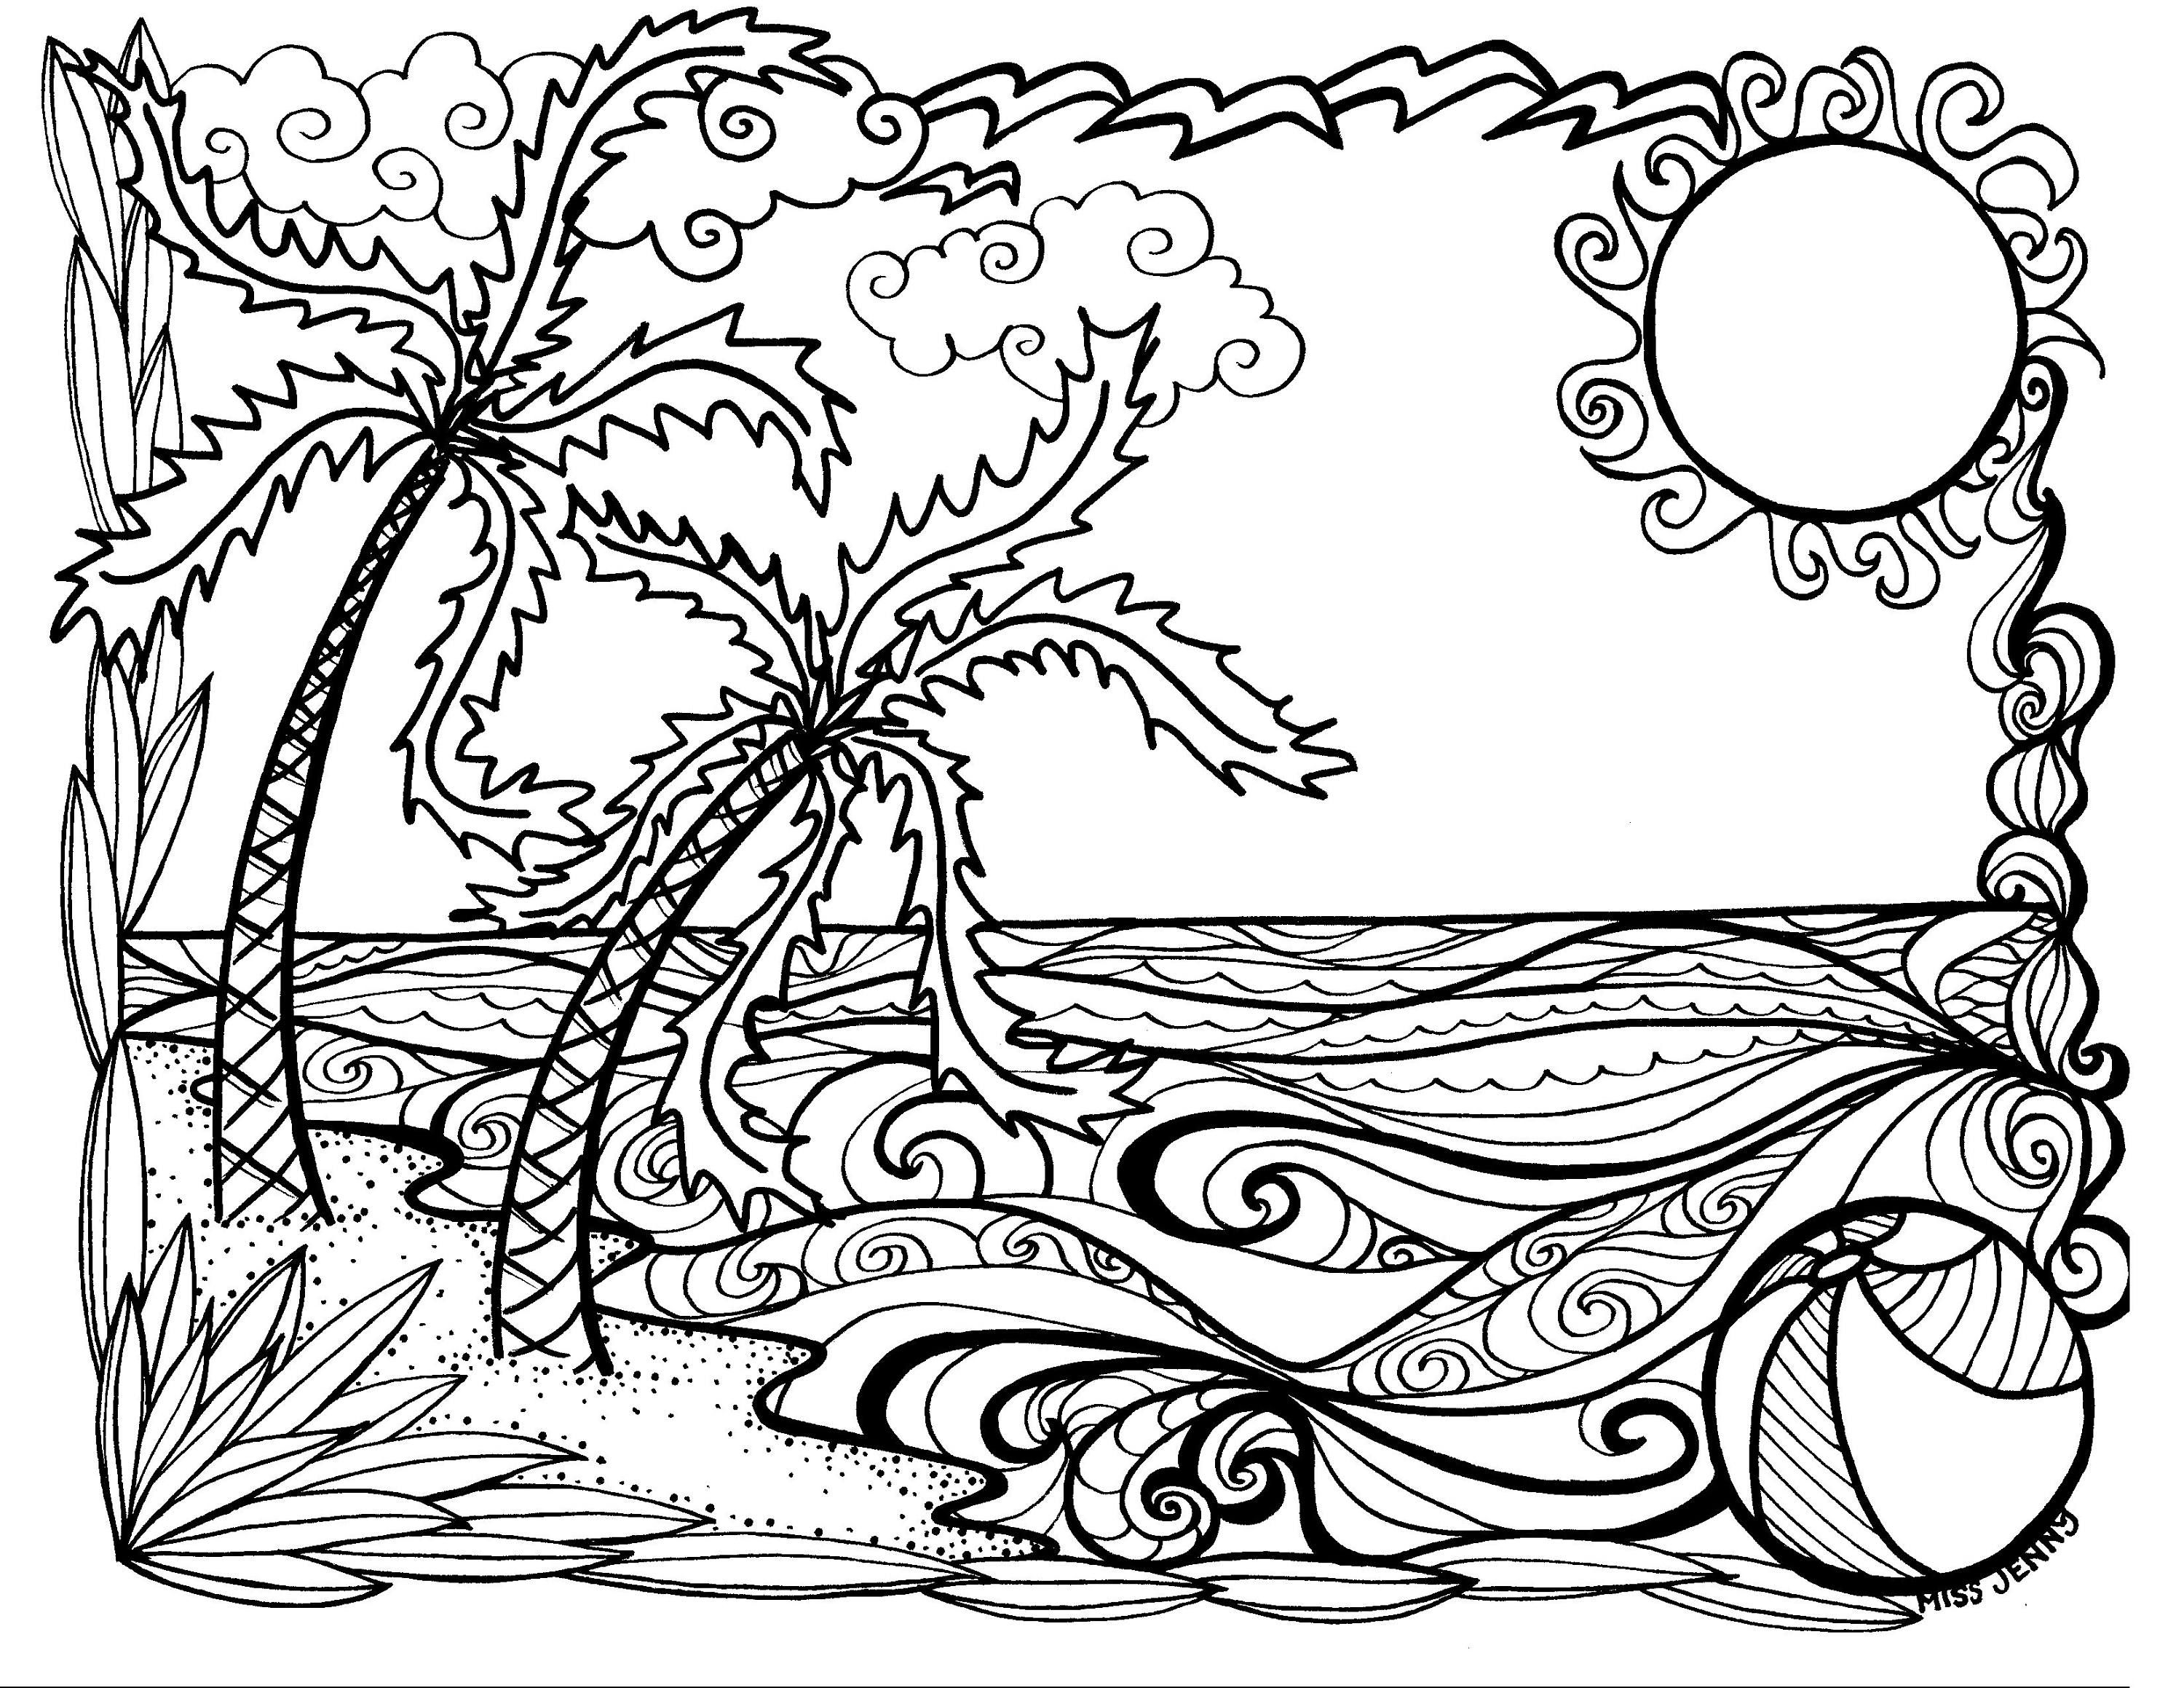 Summer Fun at the Beach Coloring Page by MissJennyDesignsUS on Etsy ...